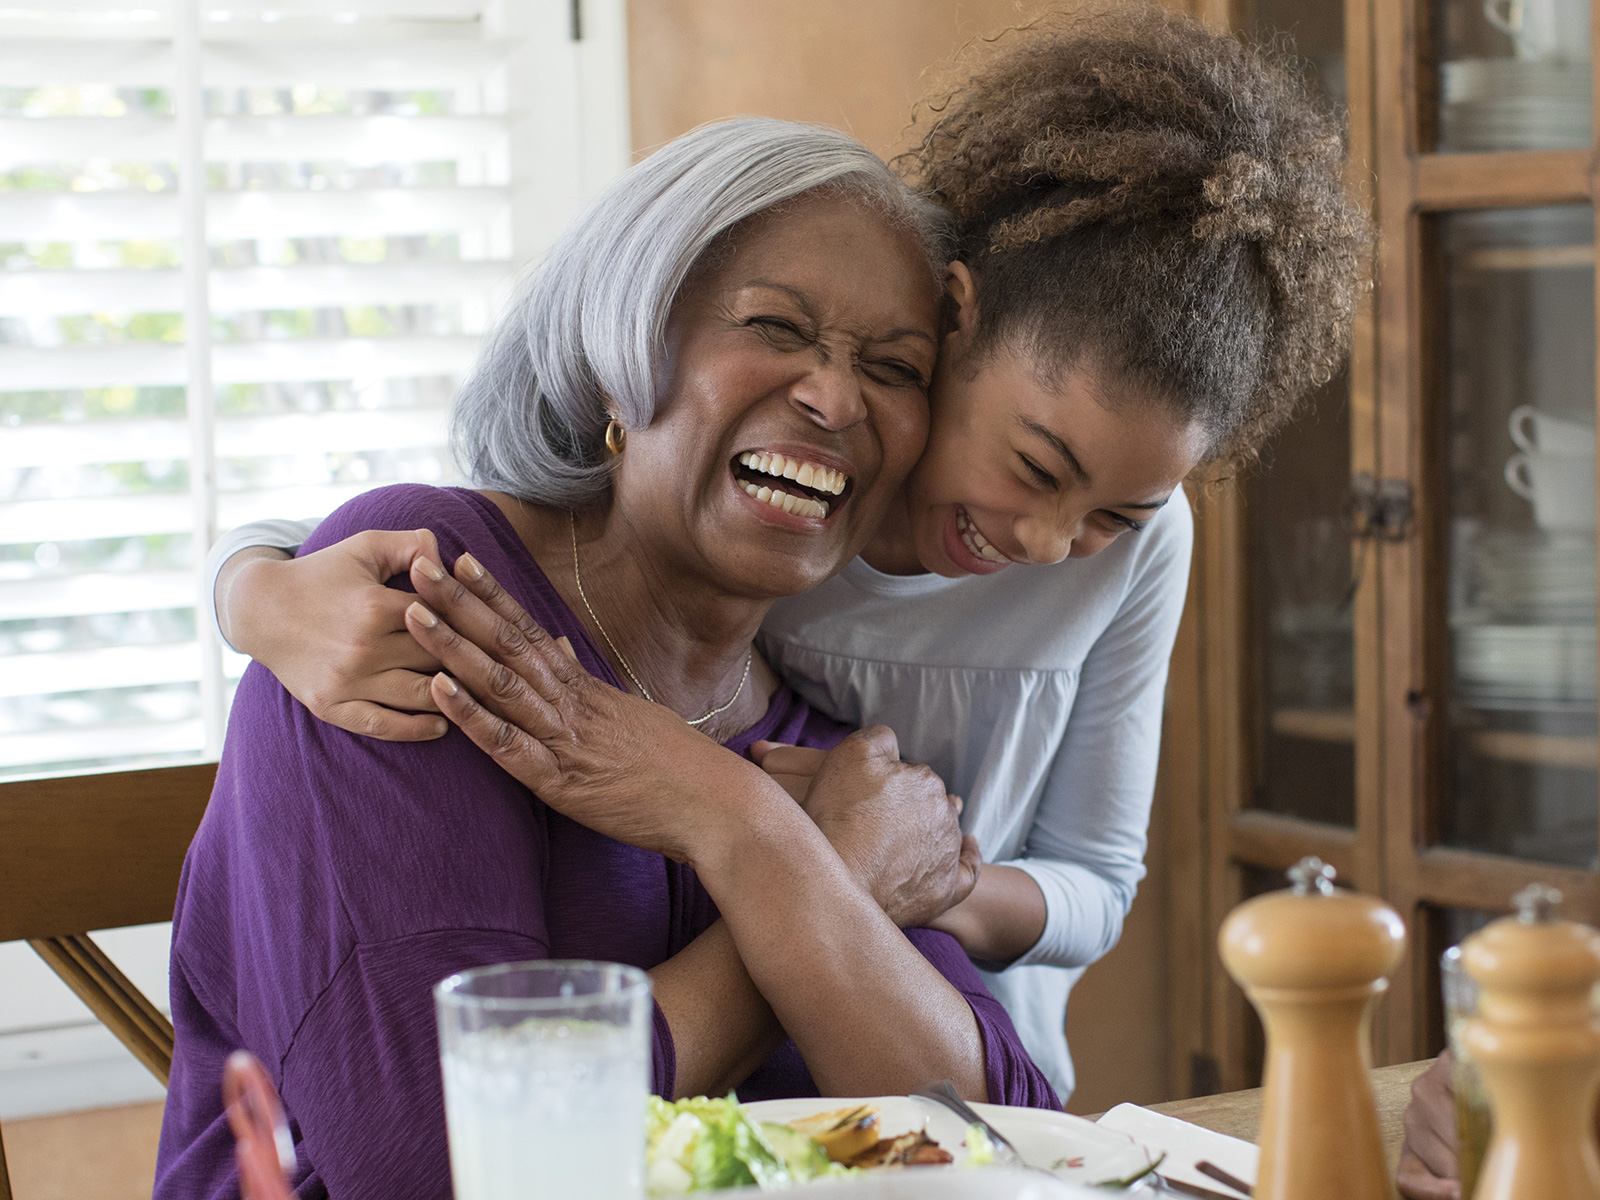 A young girl hugs her grandma while both are laughing at the dinner table.